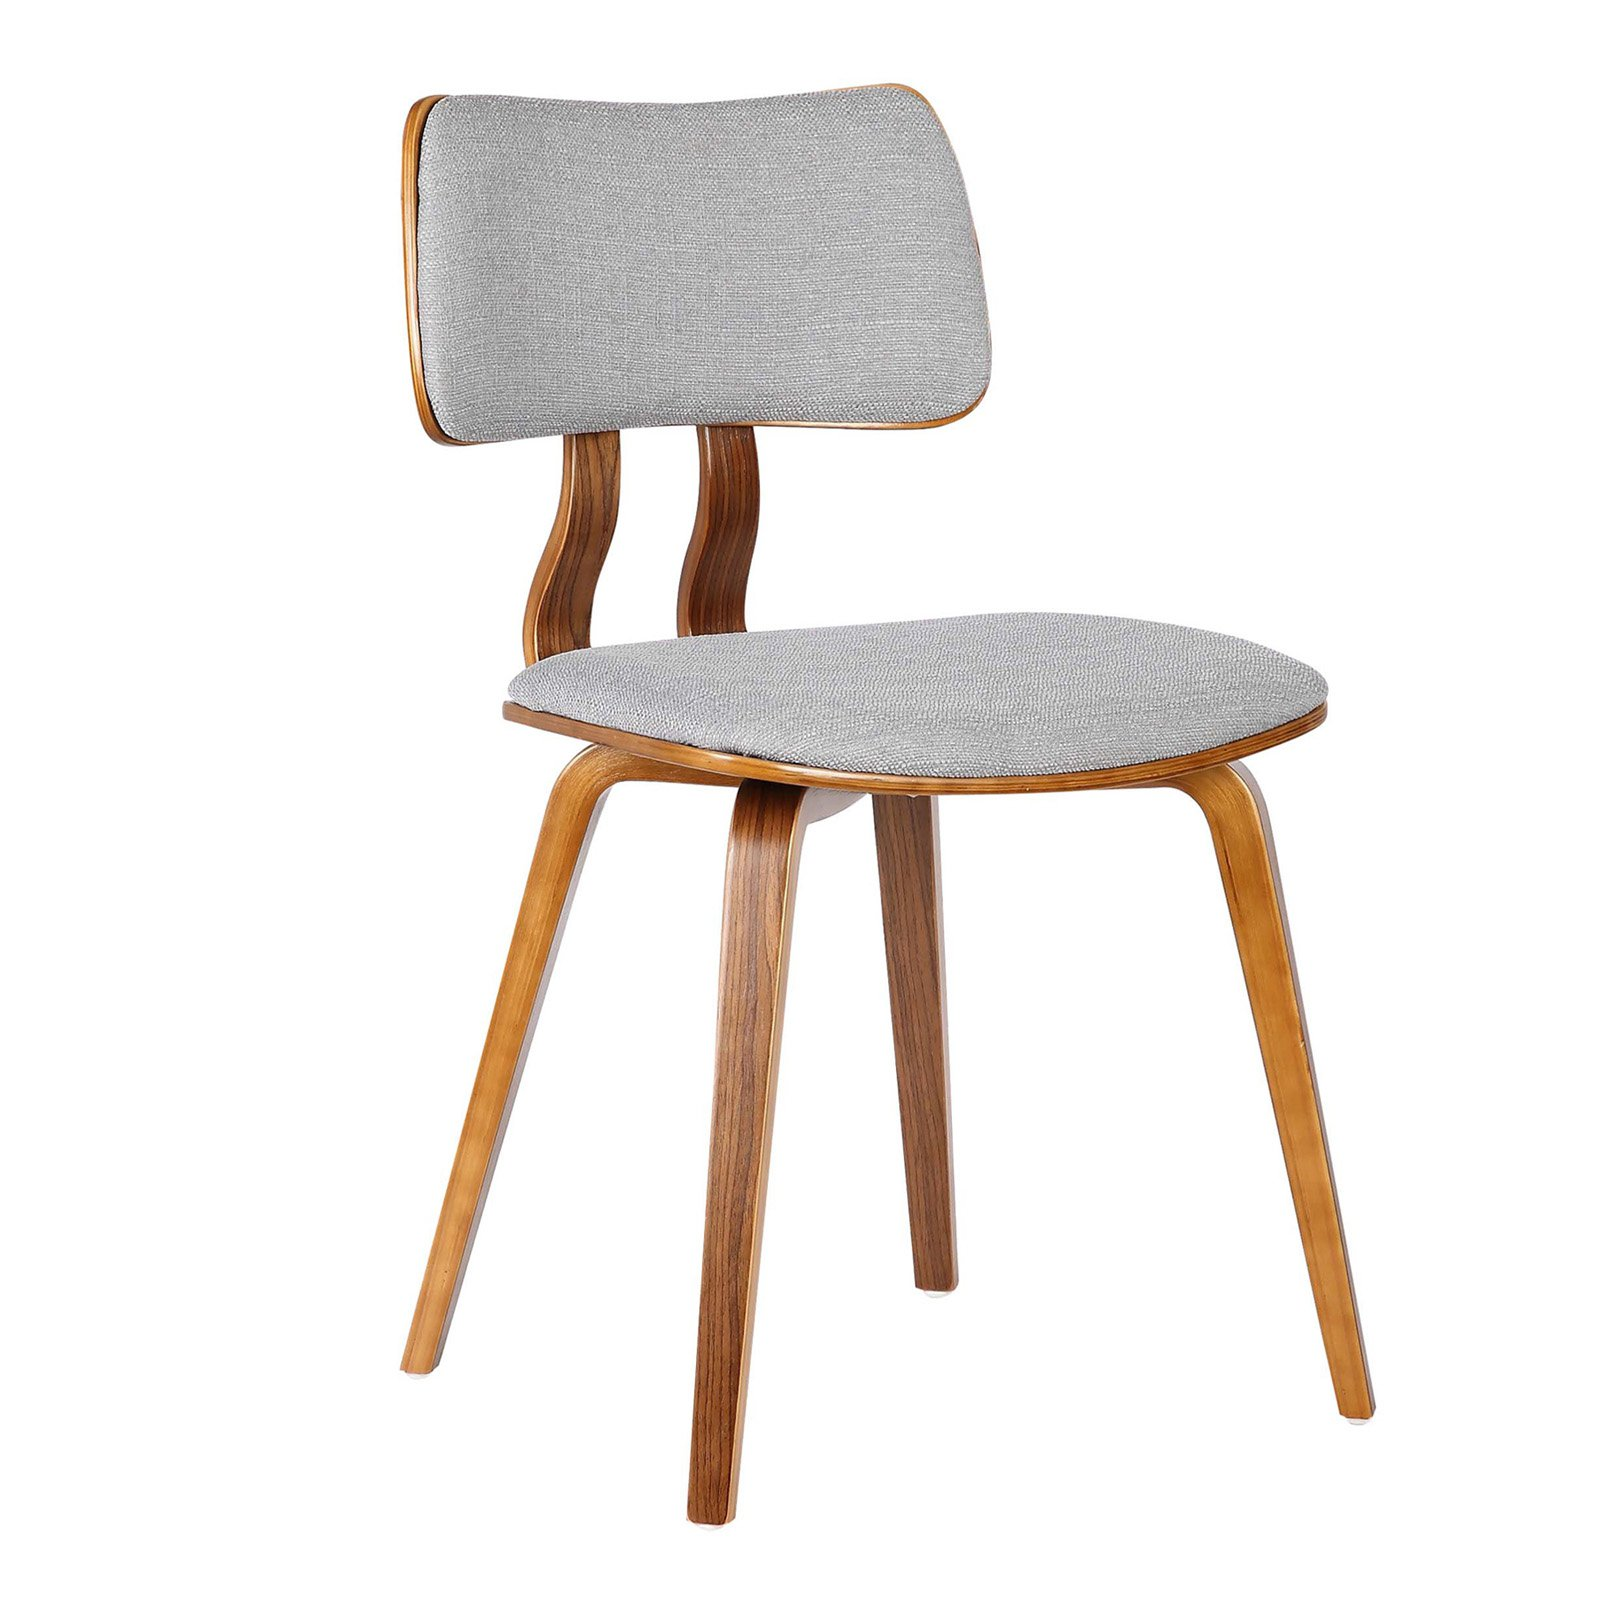 Armen Living Jaguar Mid-Century Dining Chair in Walnut Wood and Fabric